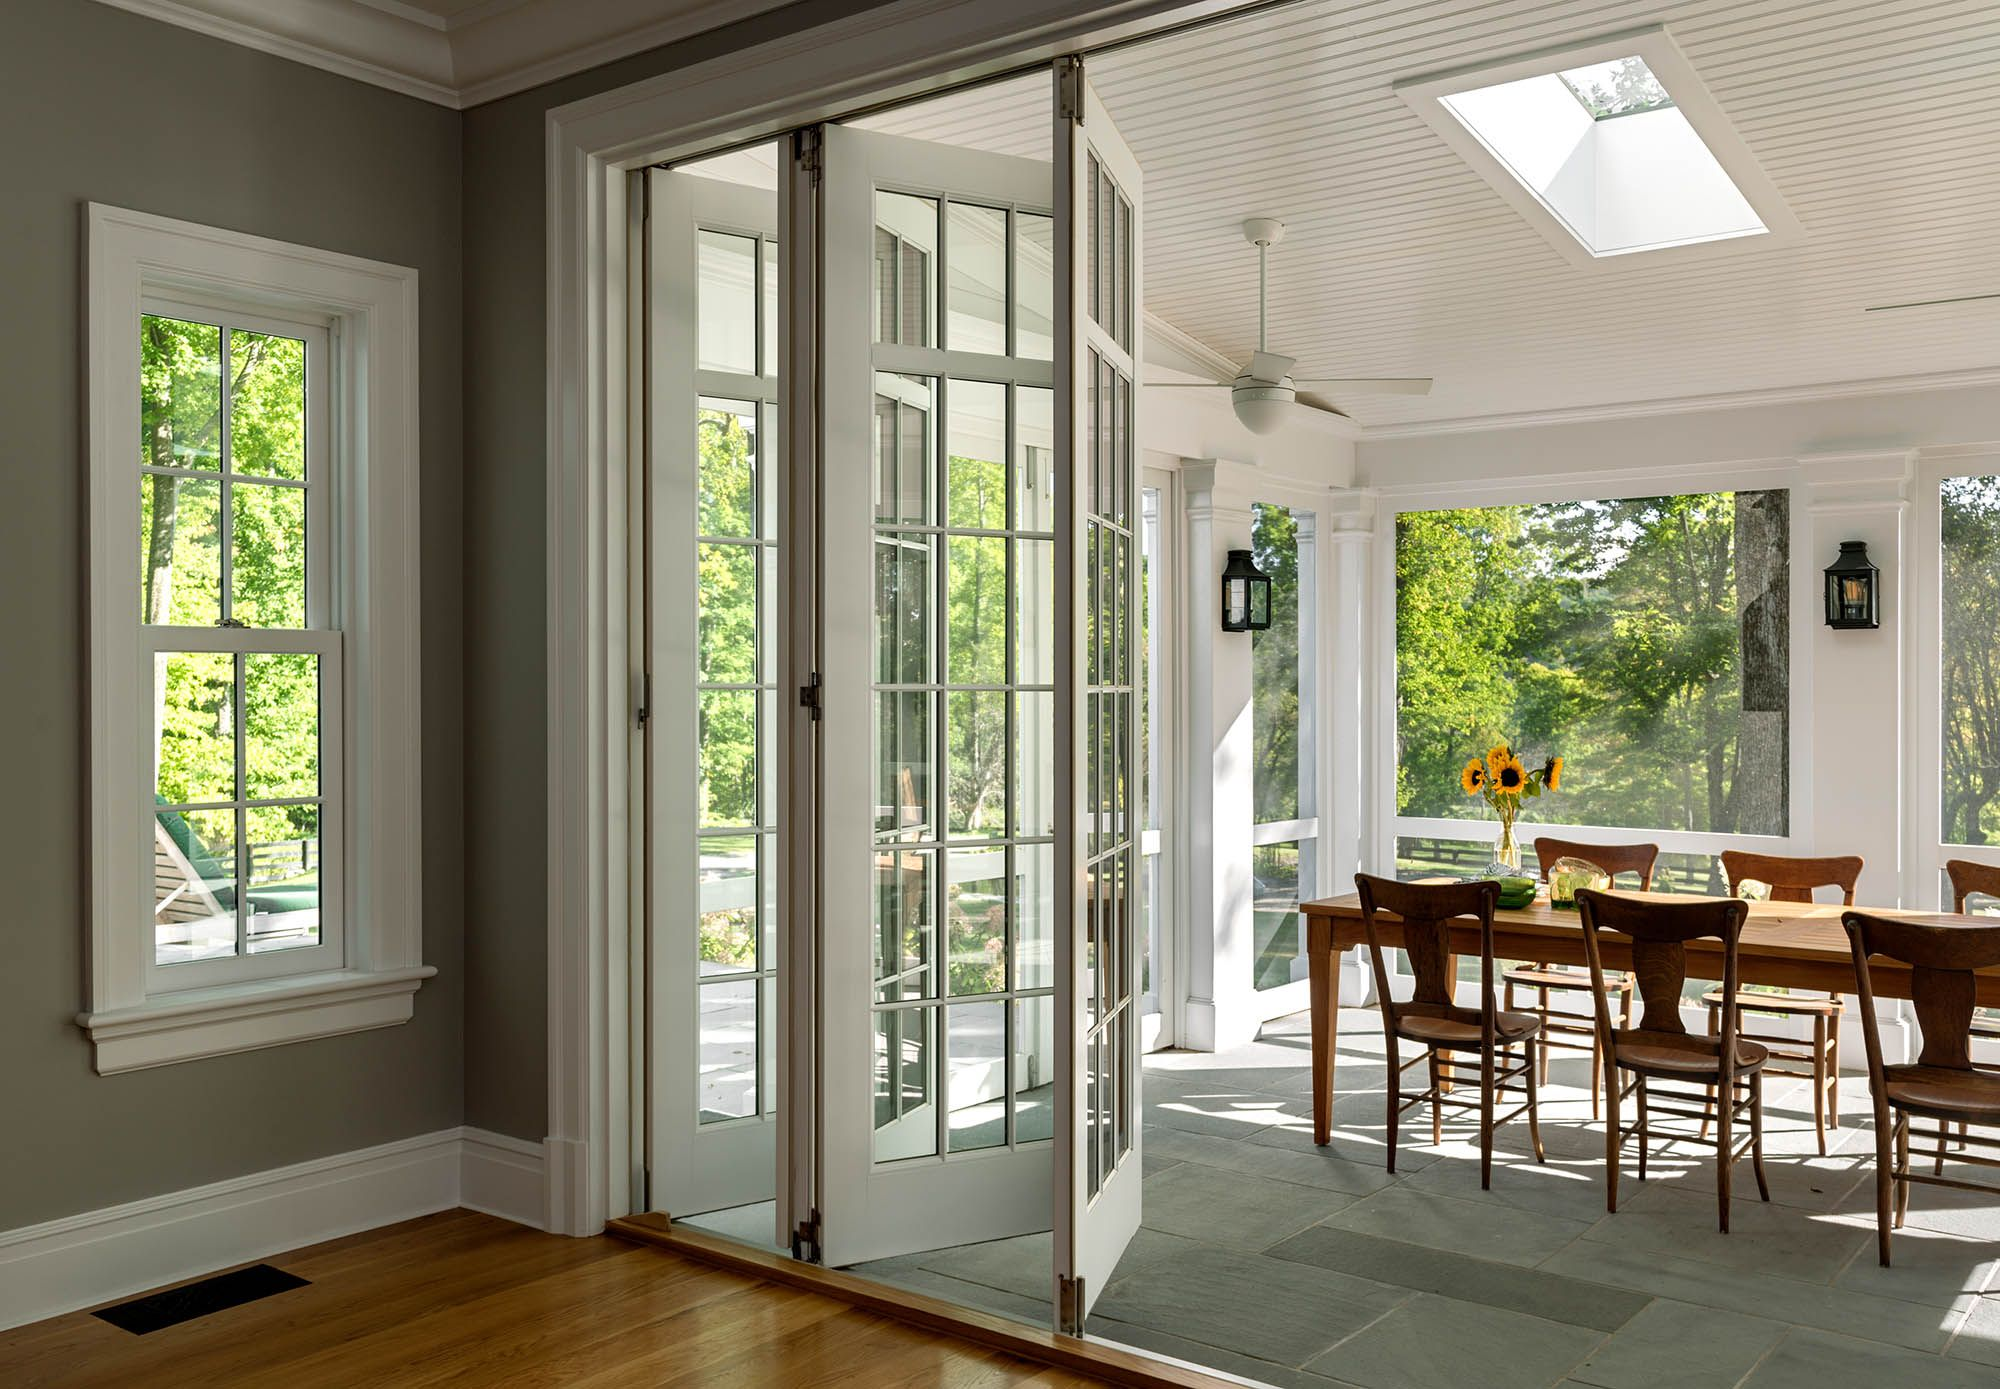 Make Your Living Room Bigger With Sliding Glass Paneled Walls Crisp Architects House With Porch Folding Glass Doors Screened Porch